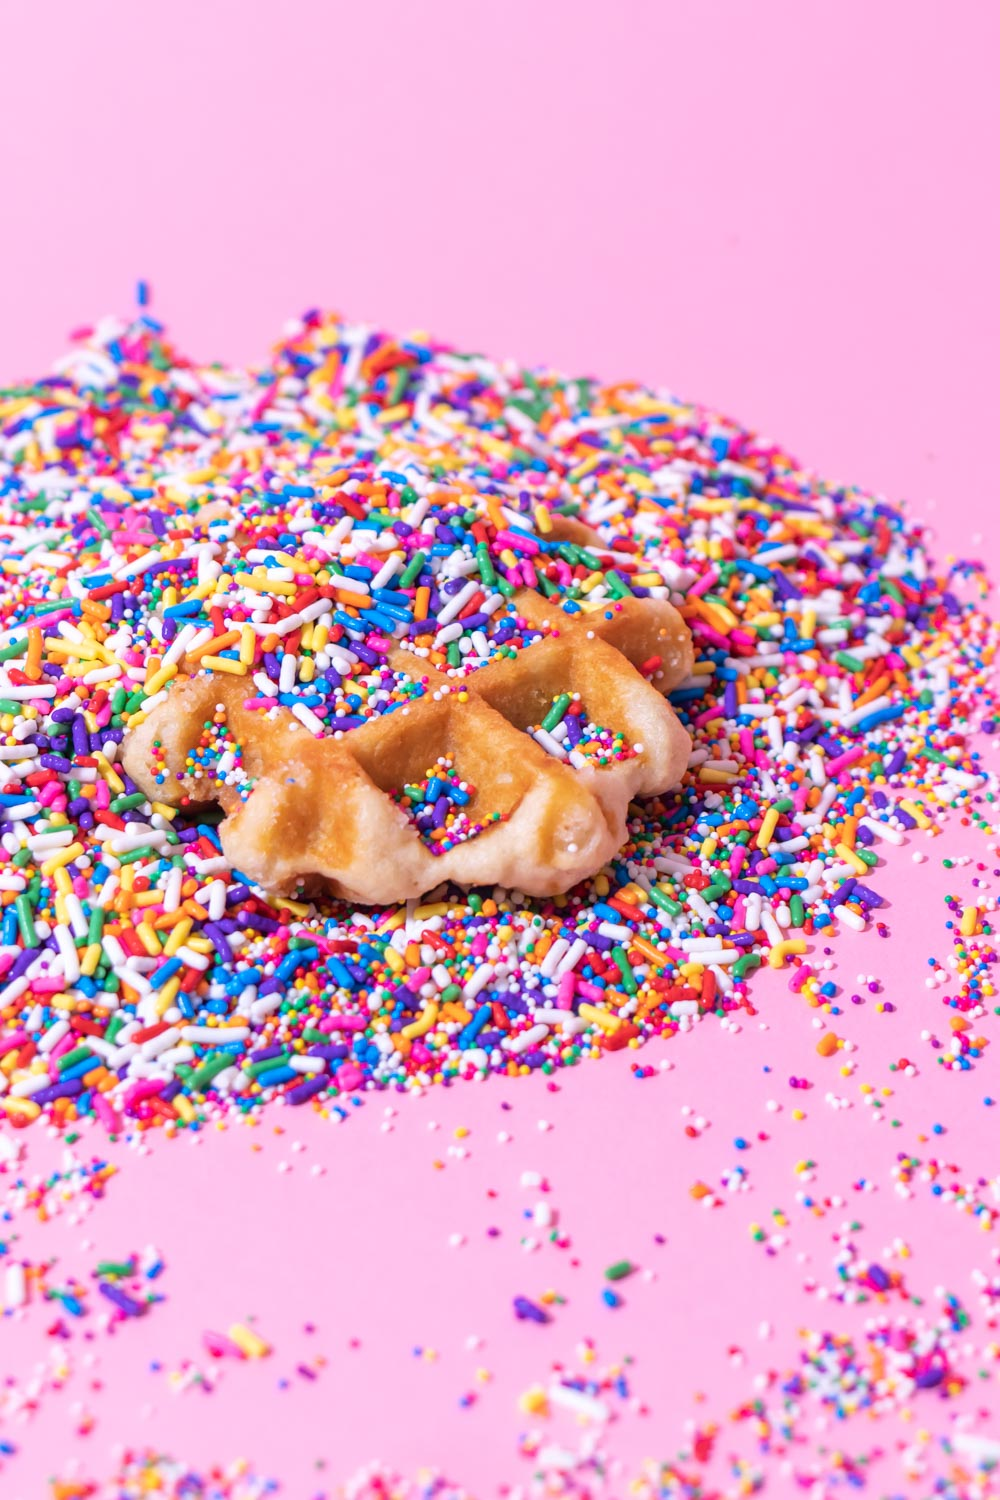 waffle in sprinkles styled food photography for social media content creation